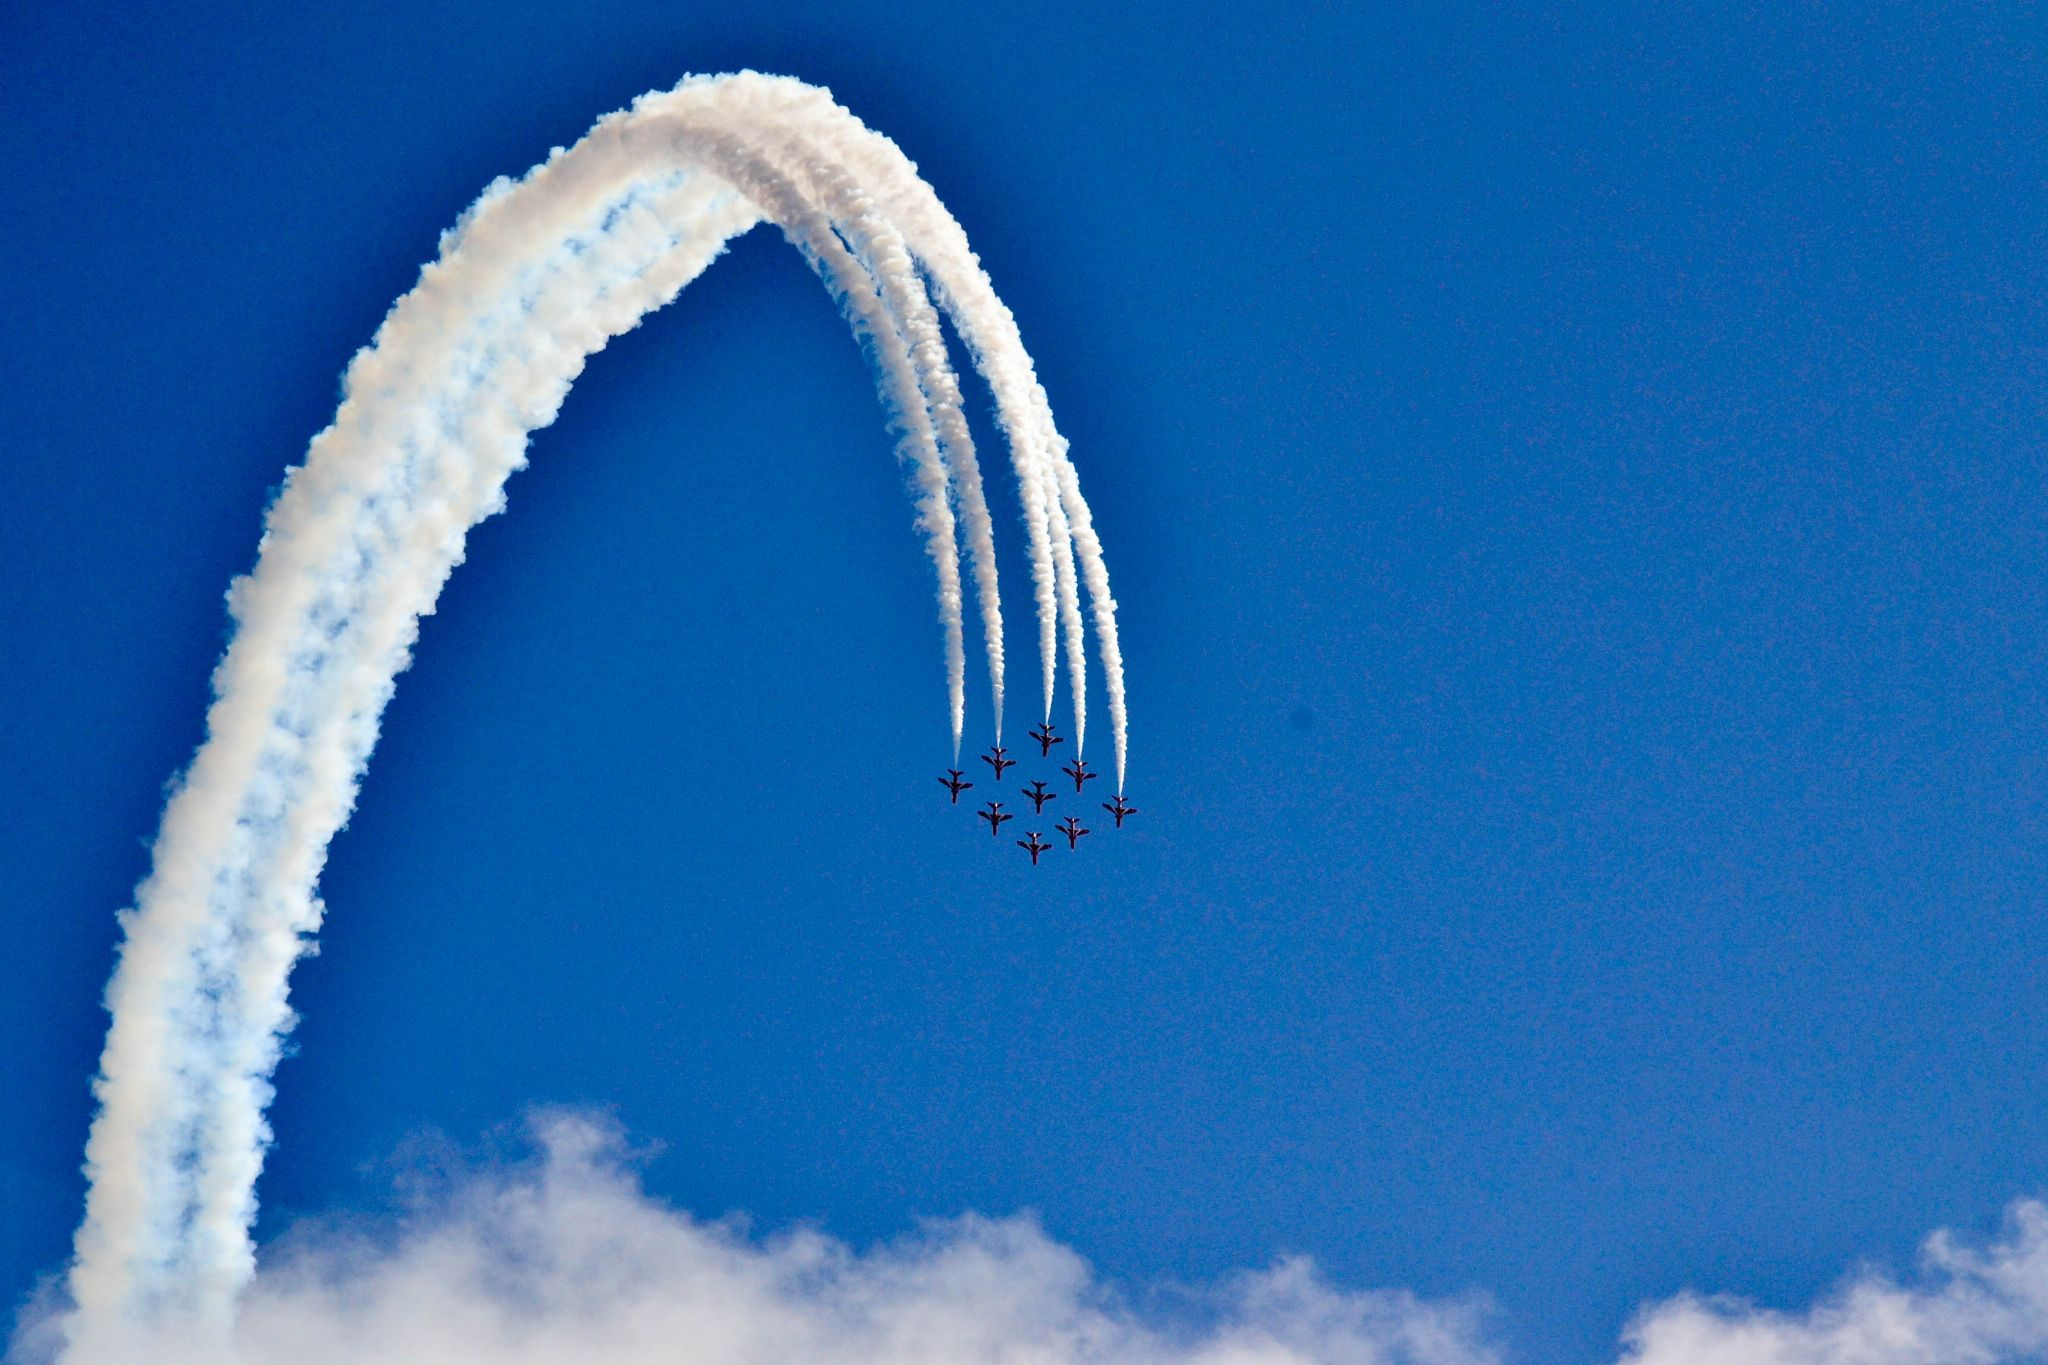 Red Arrows by Andrea Leprini